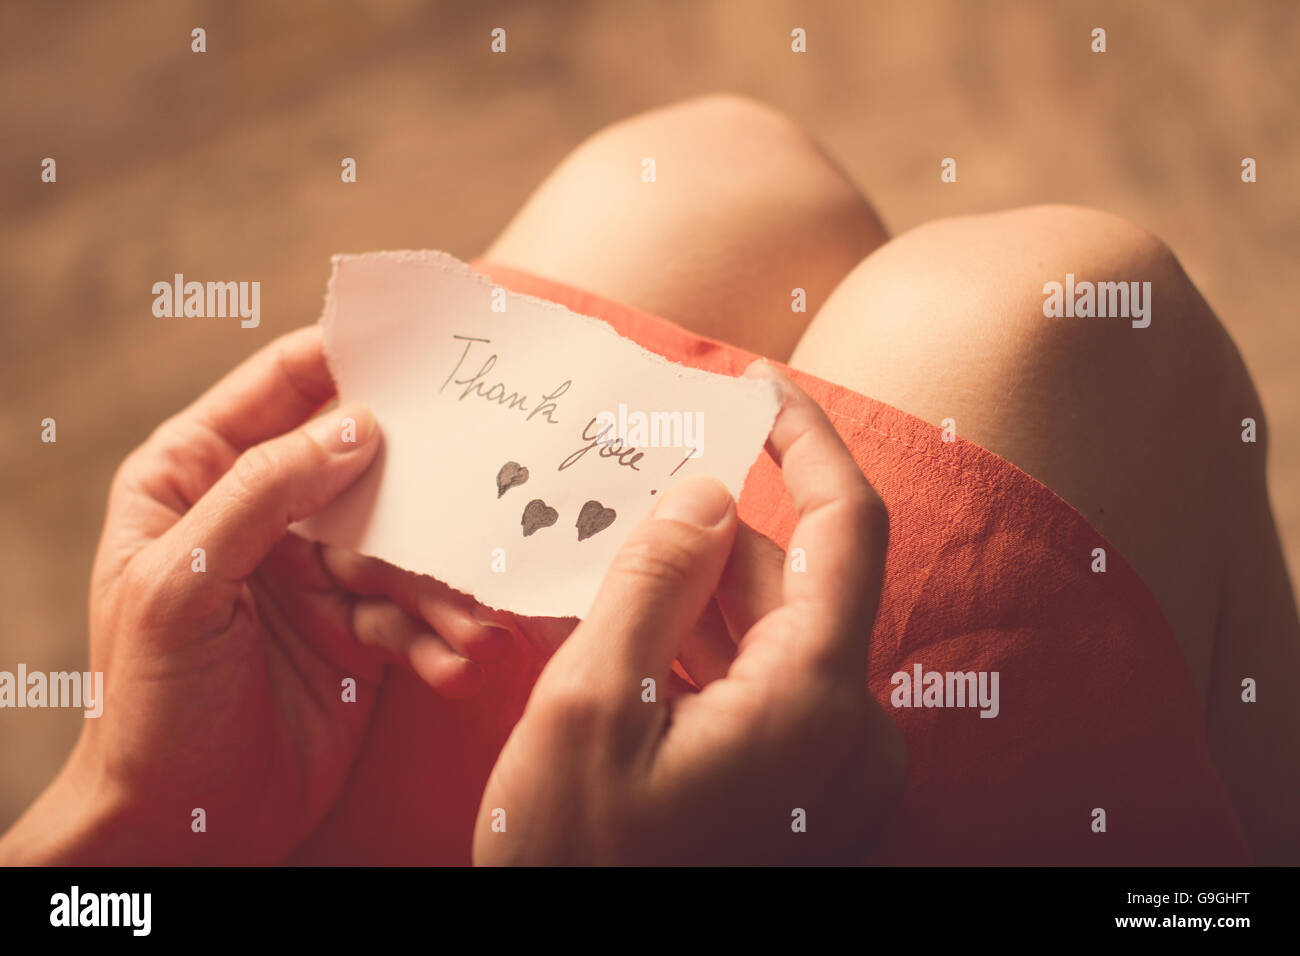 Top view of a woman with pink dress holding a thank you note in her hand Stock Photo